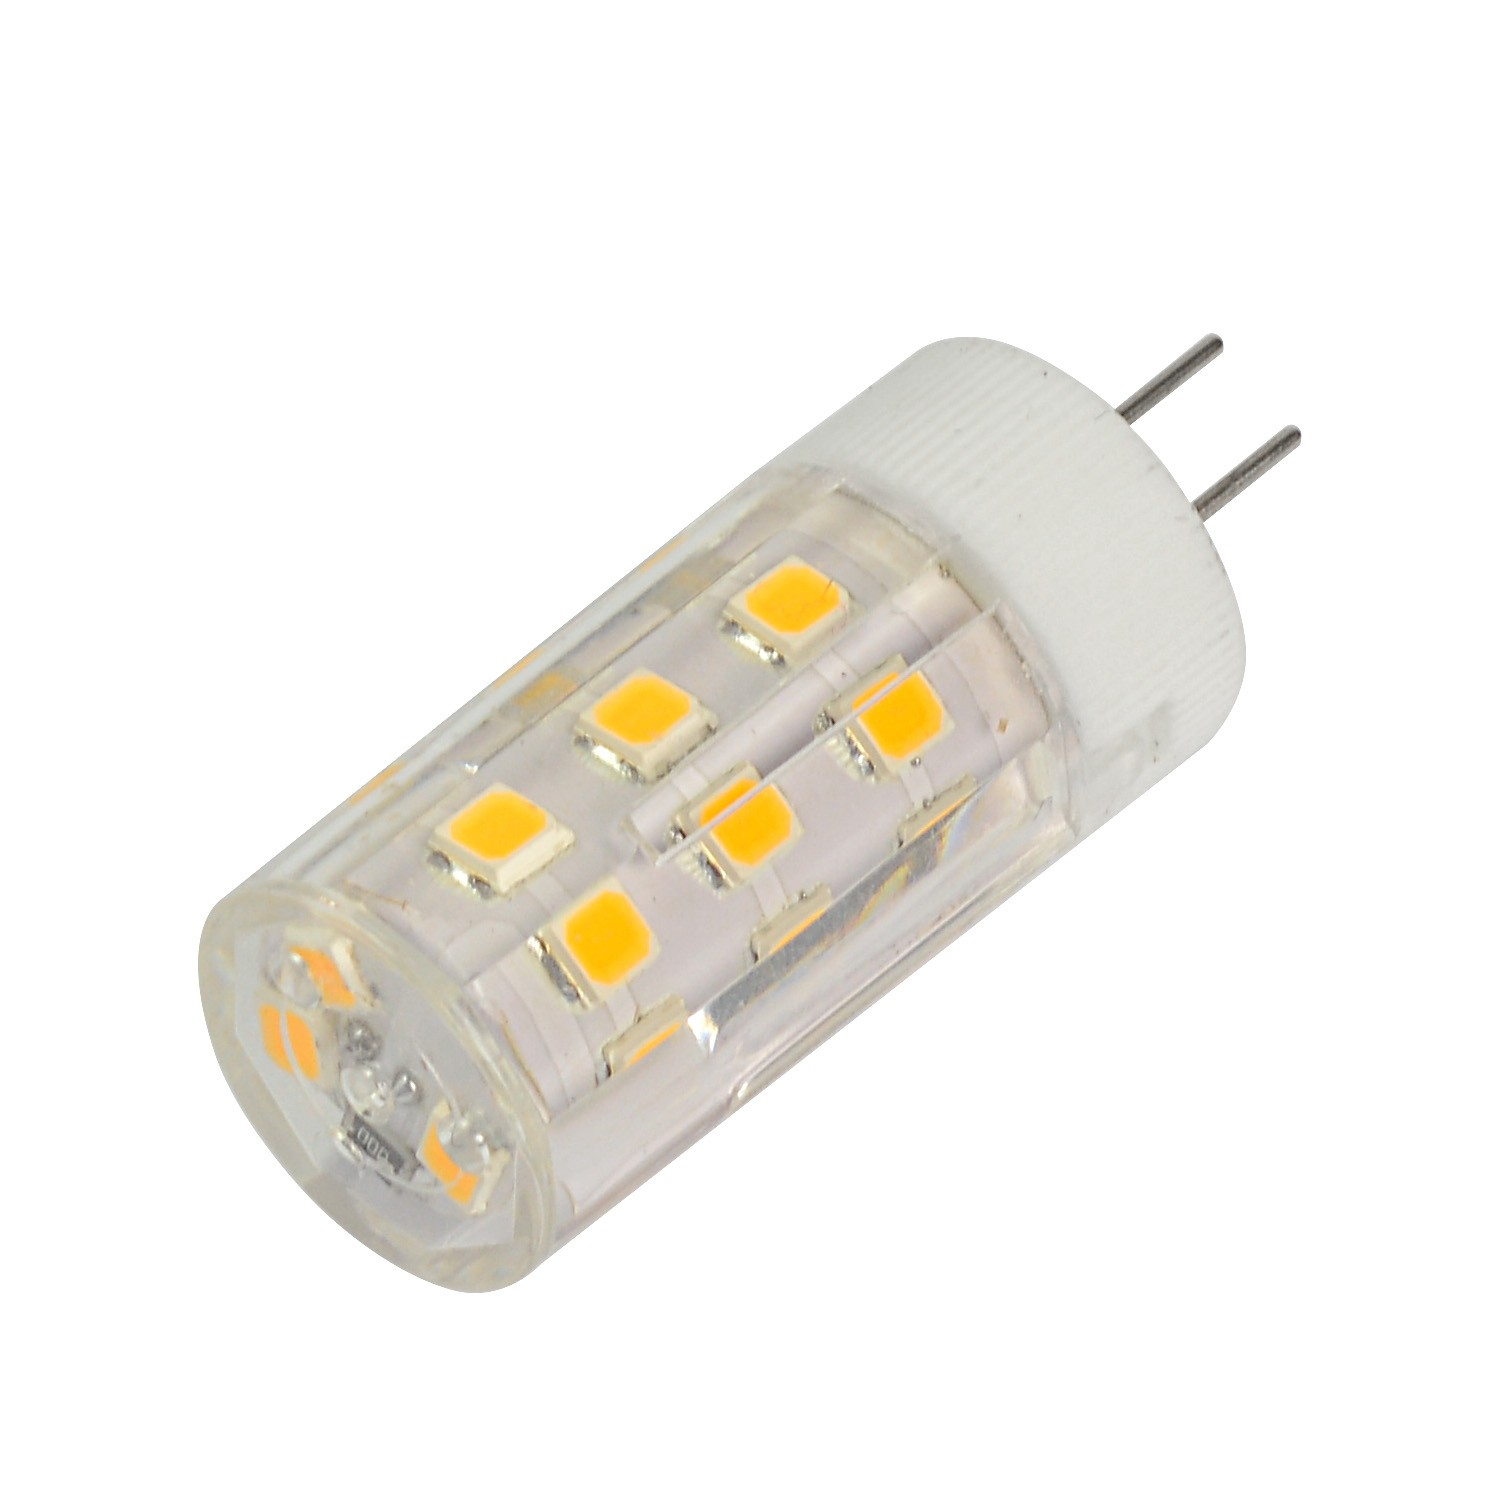 mengsled mengs g4 3w led light 27x 2835 smd led bulb. Black Bedroom Furniture Sets. Home Design Ideas